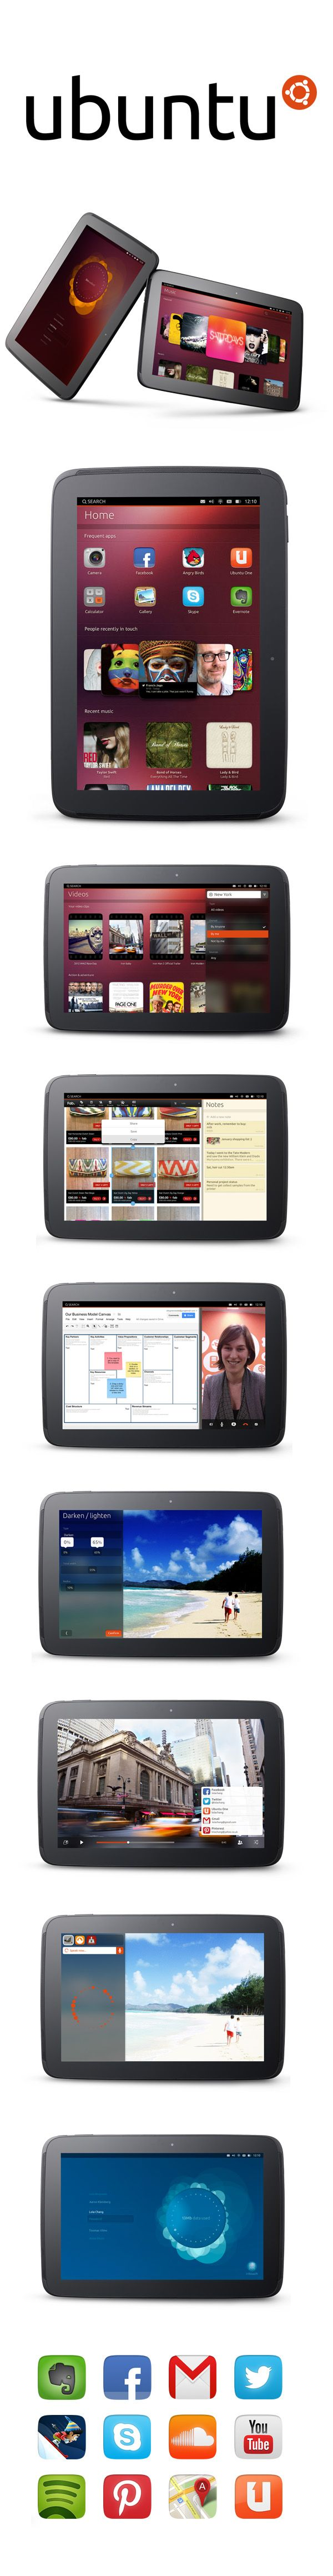 Ubuntu for tablets revealed with split screen multi-tasking, preview for Nexus slates coming this week :)